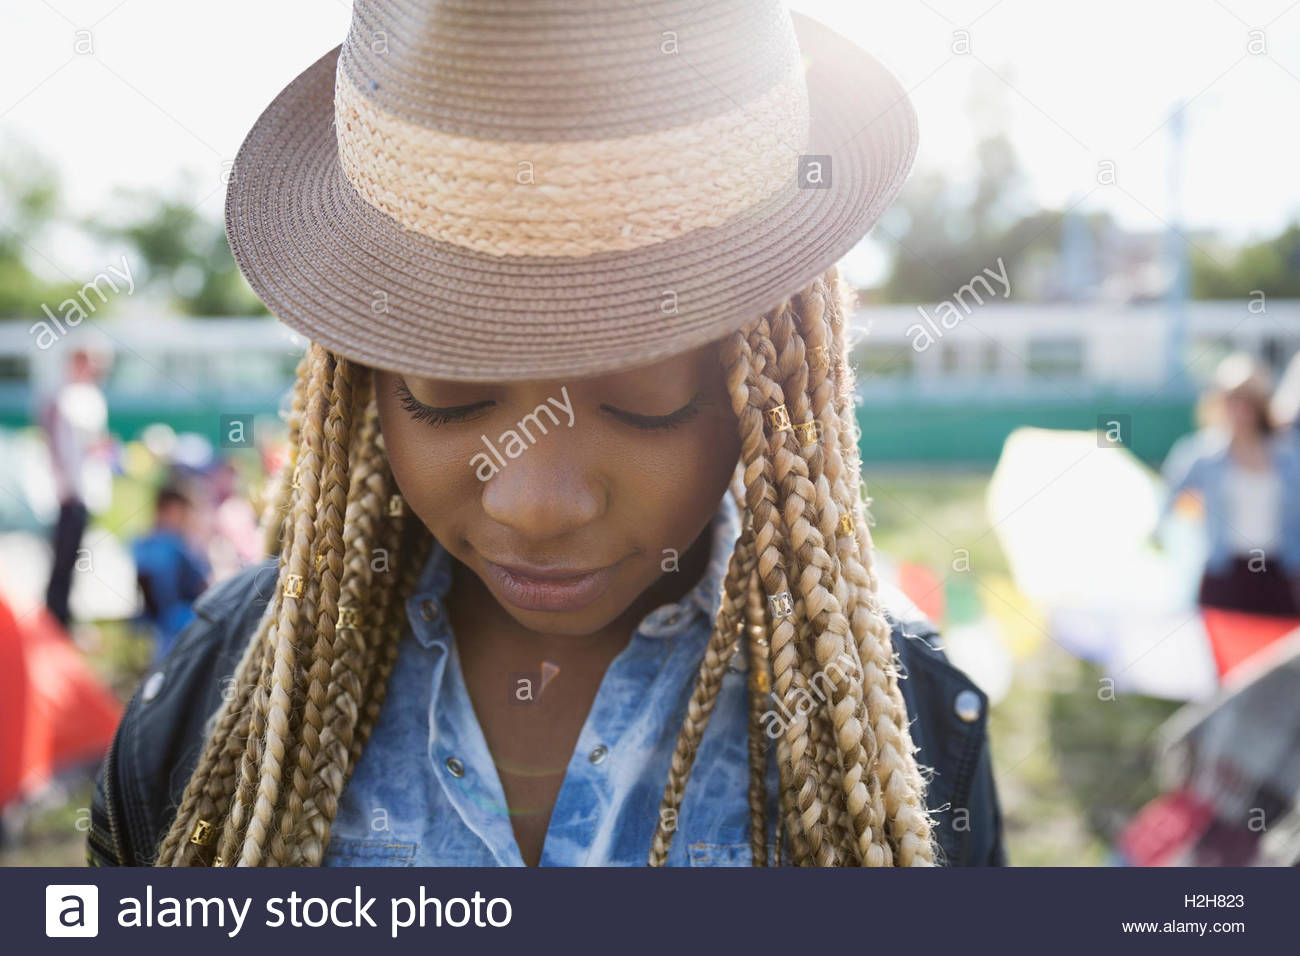 Close up portrait young woman with blonde braids wearing hat looking down at summer music festival campsite - Stock Image